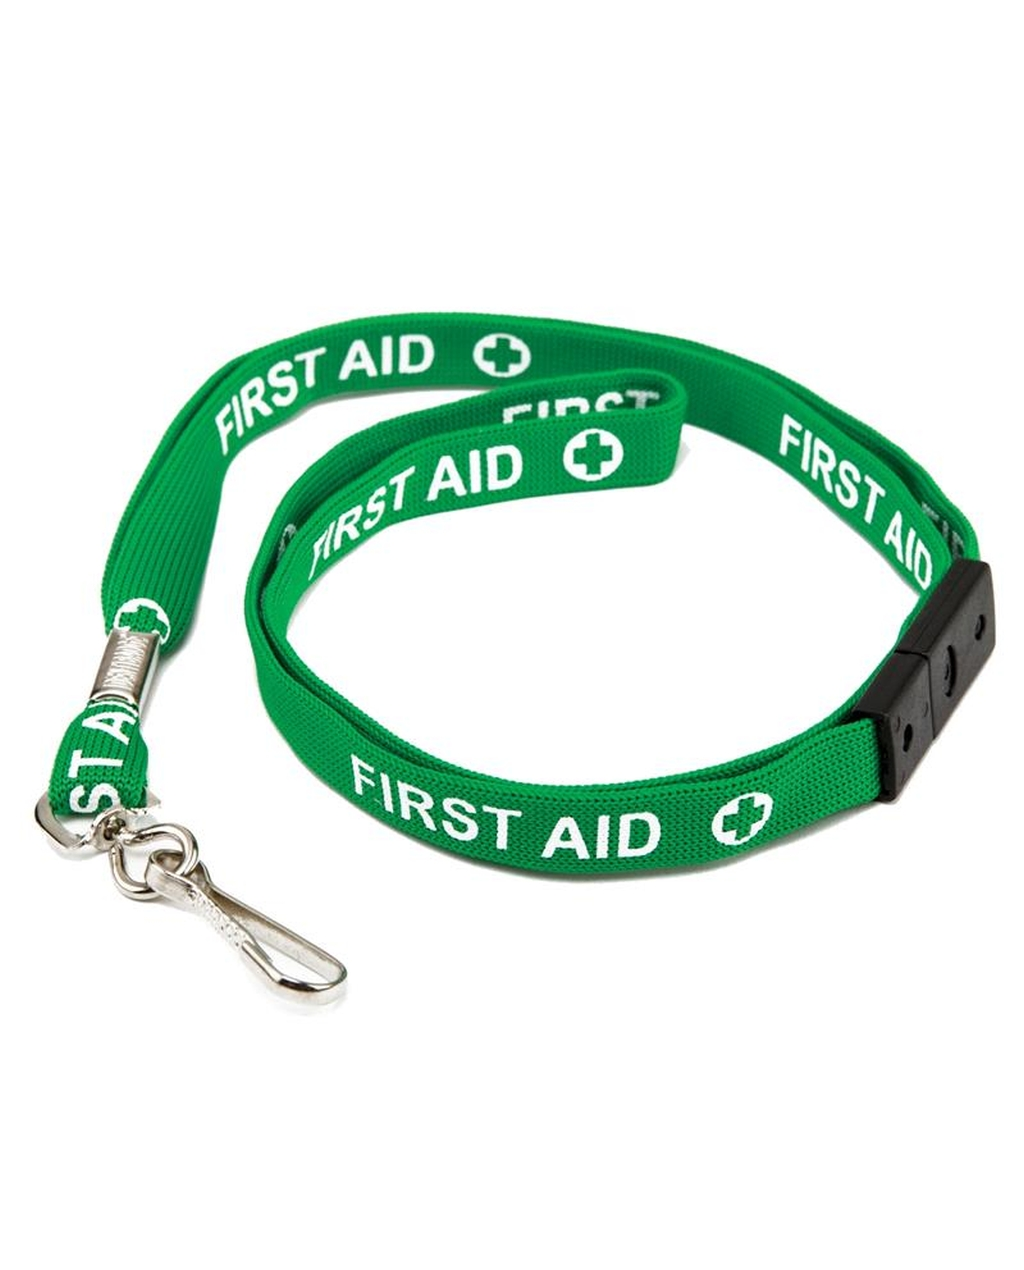 10 Printed Breakaway Lanyard - FIRST AID